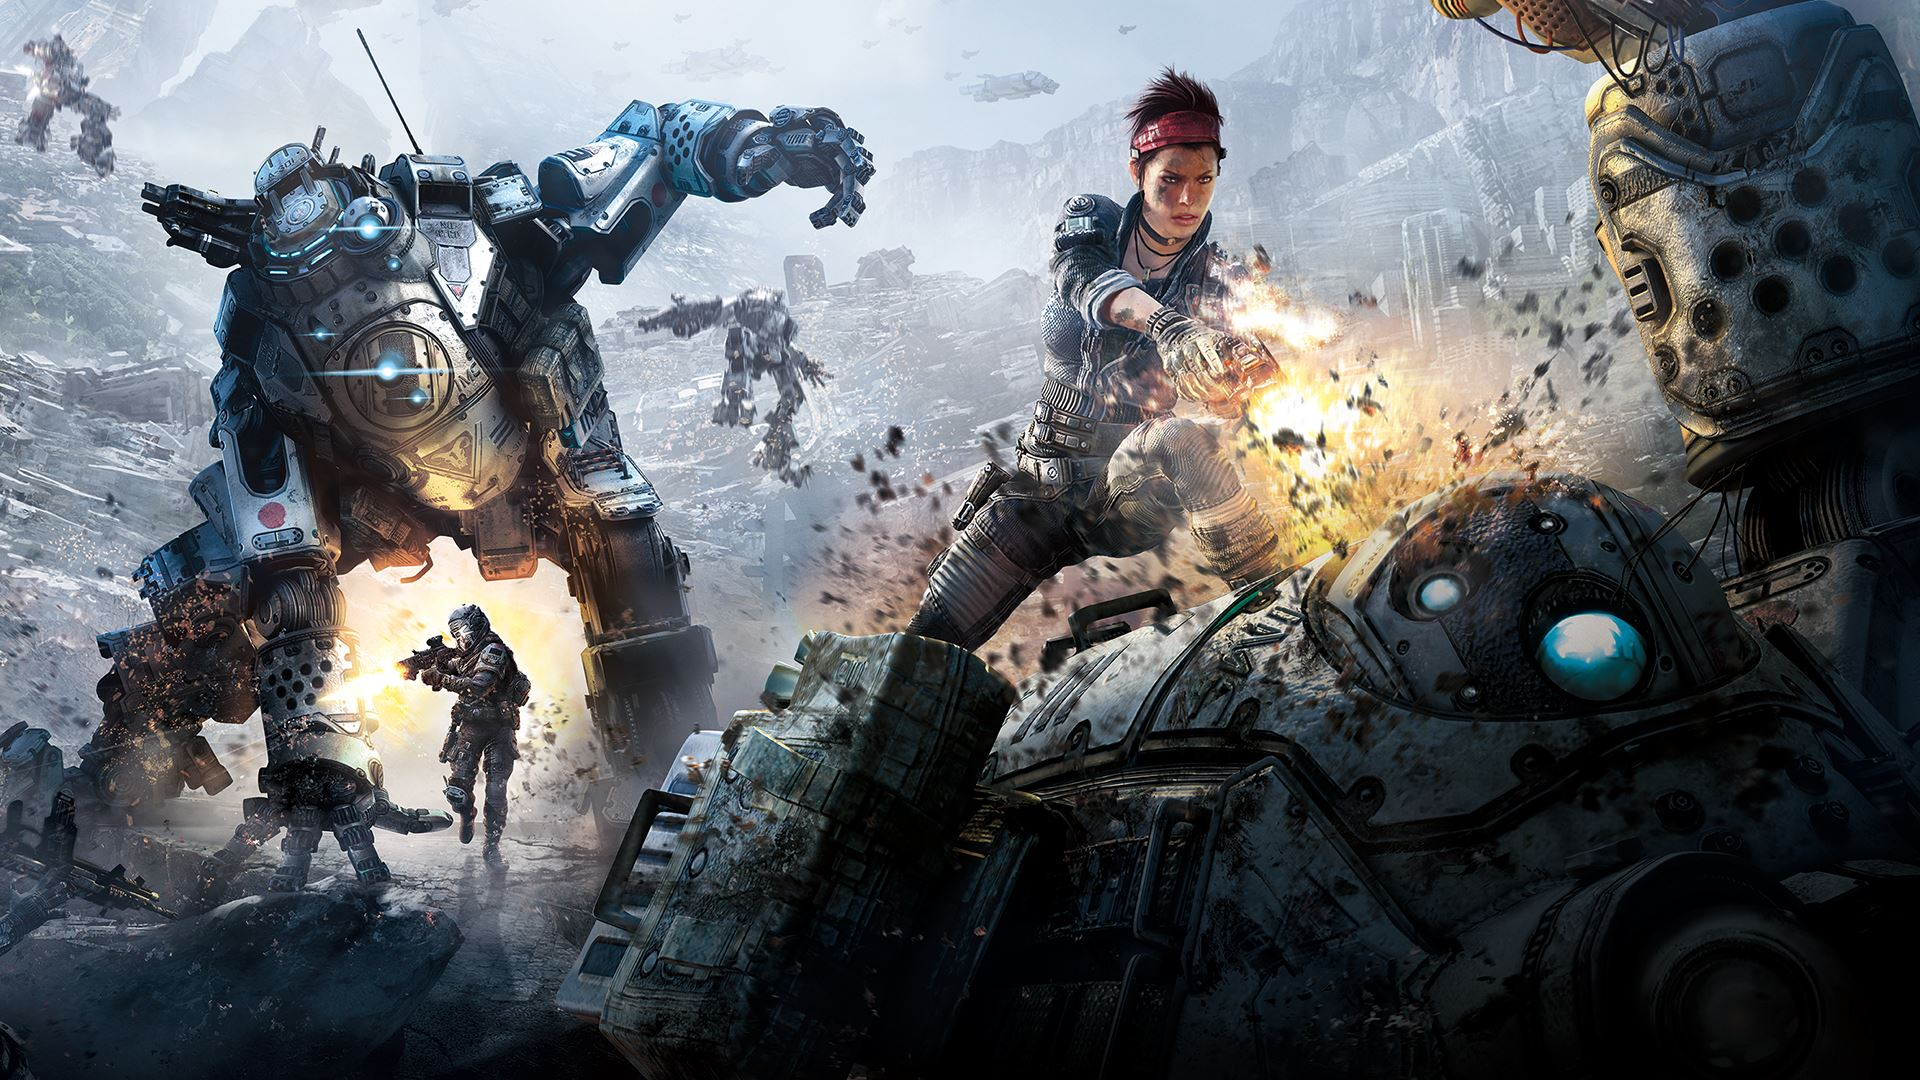 Titanfall-2-Confirmed-for-Xbox-One-PS4-and-PC-by-Vince-Zampella-475670-2